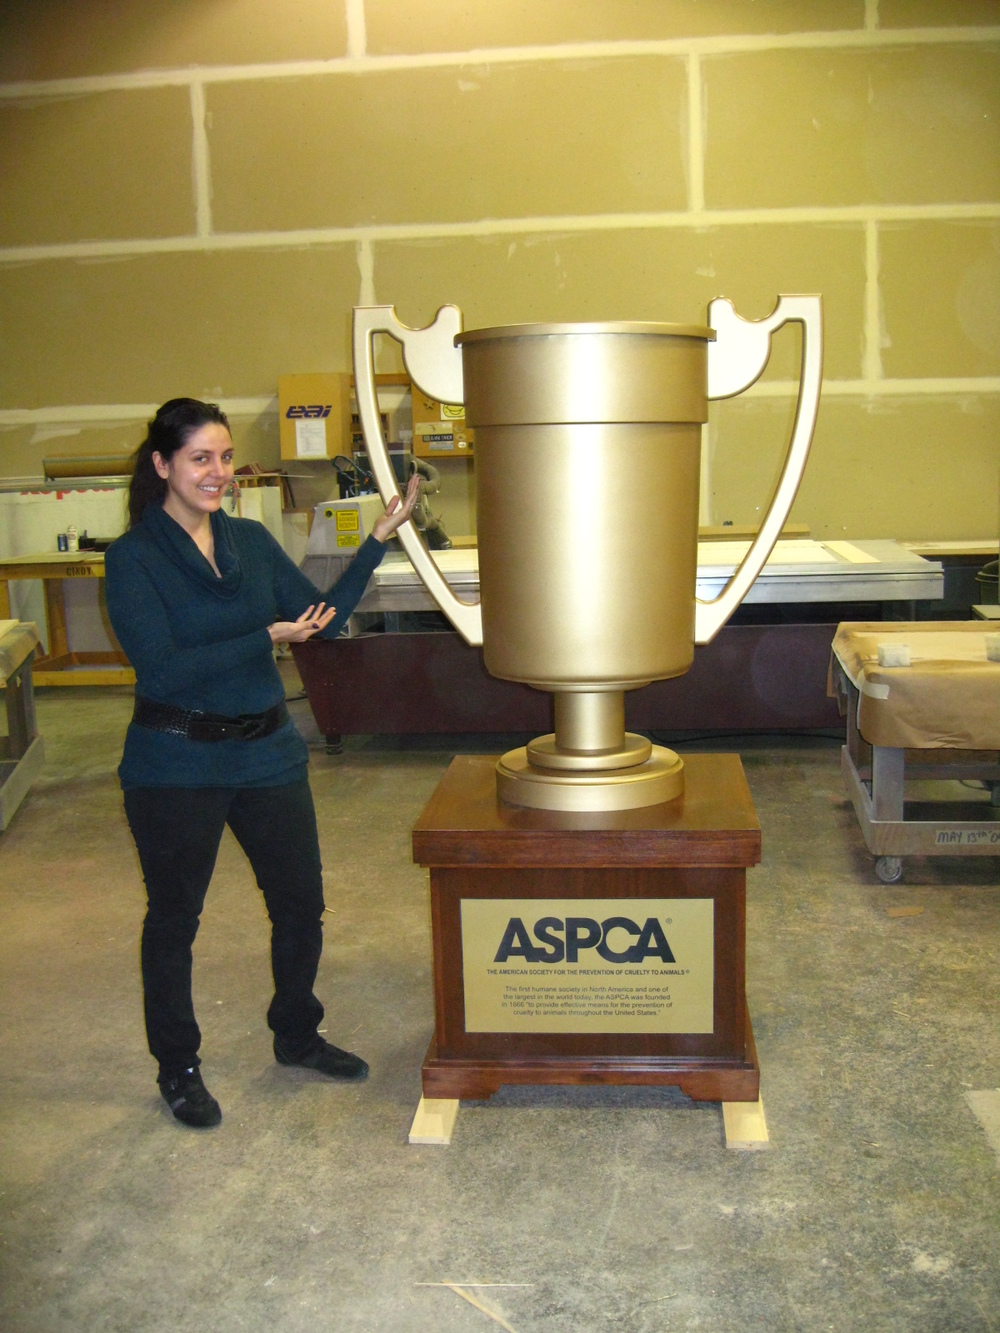 Money Funnel for the ASPCA-The American Society for the Prevention of Cruelty to Animals.